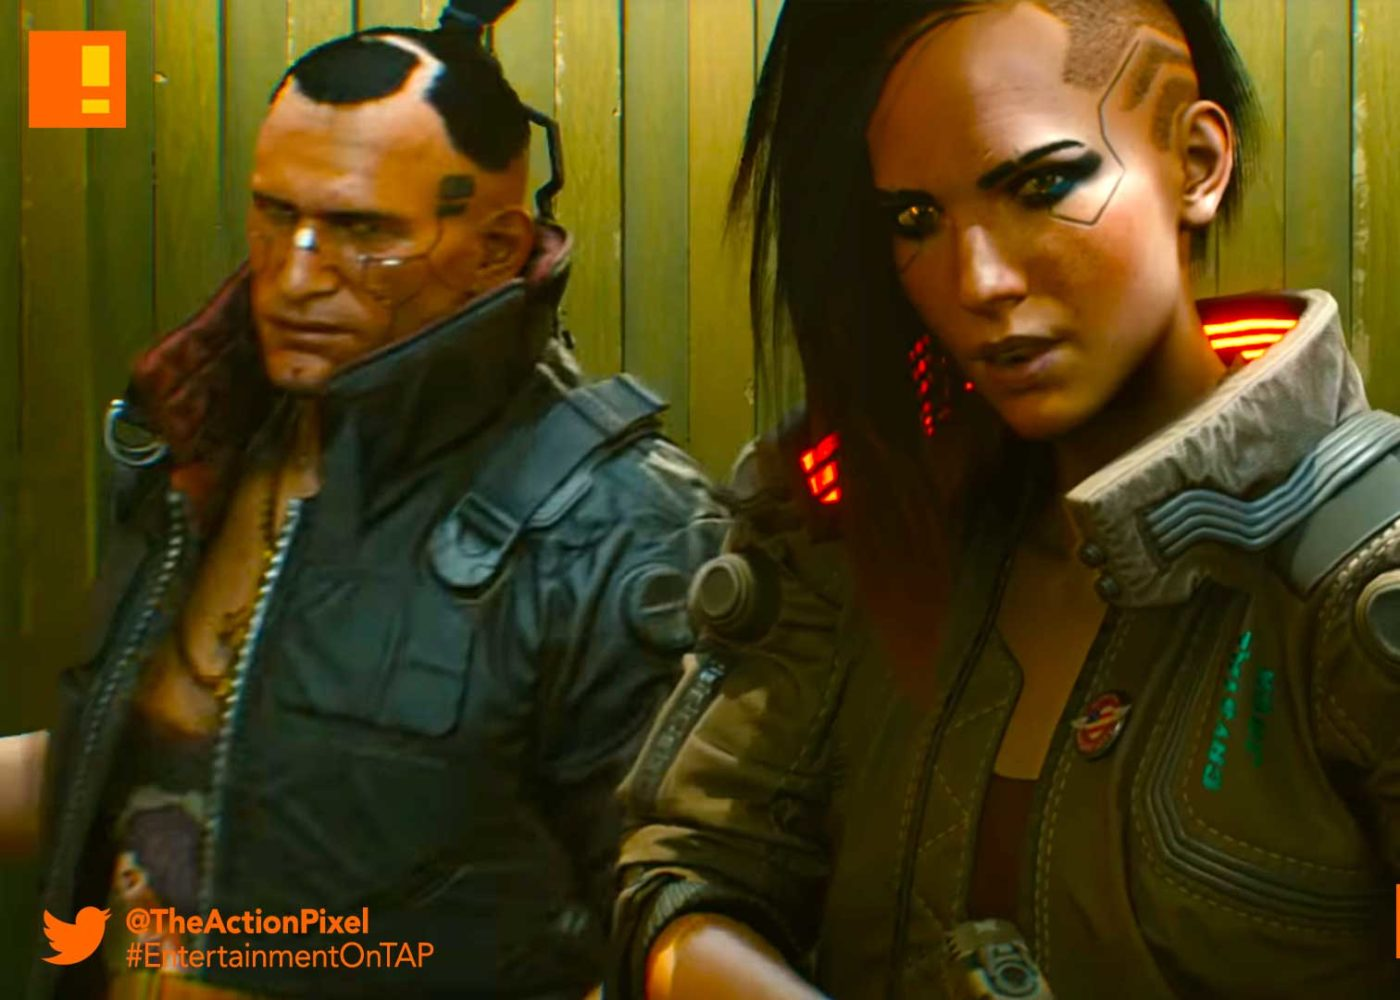 cyberpunk 2077, the action pixel, entertainment on tap